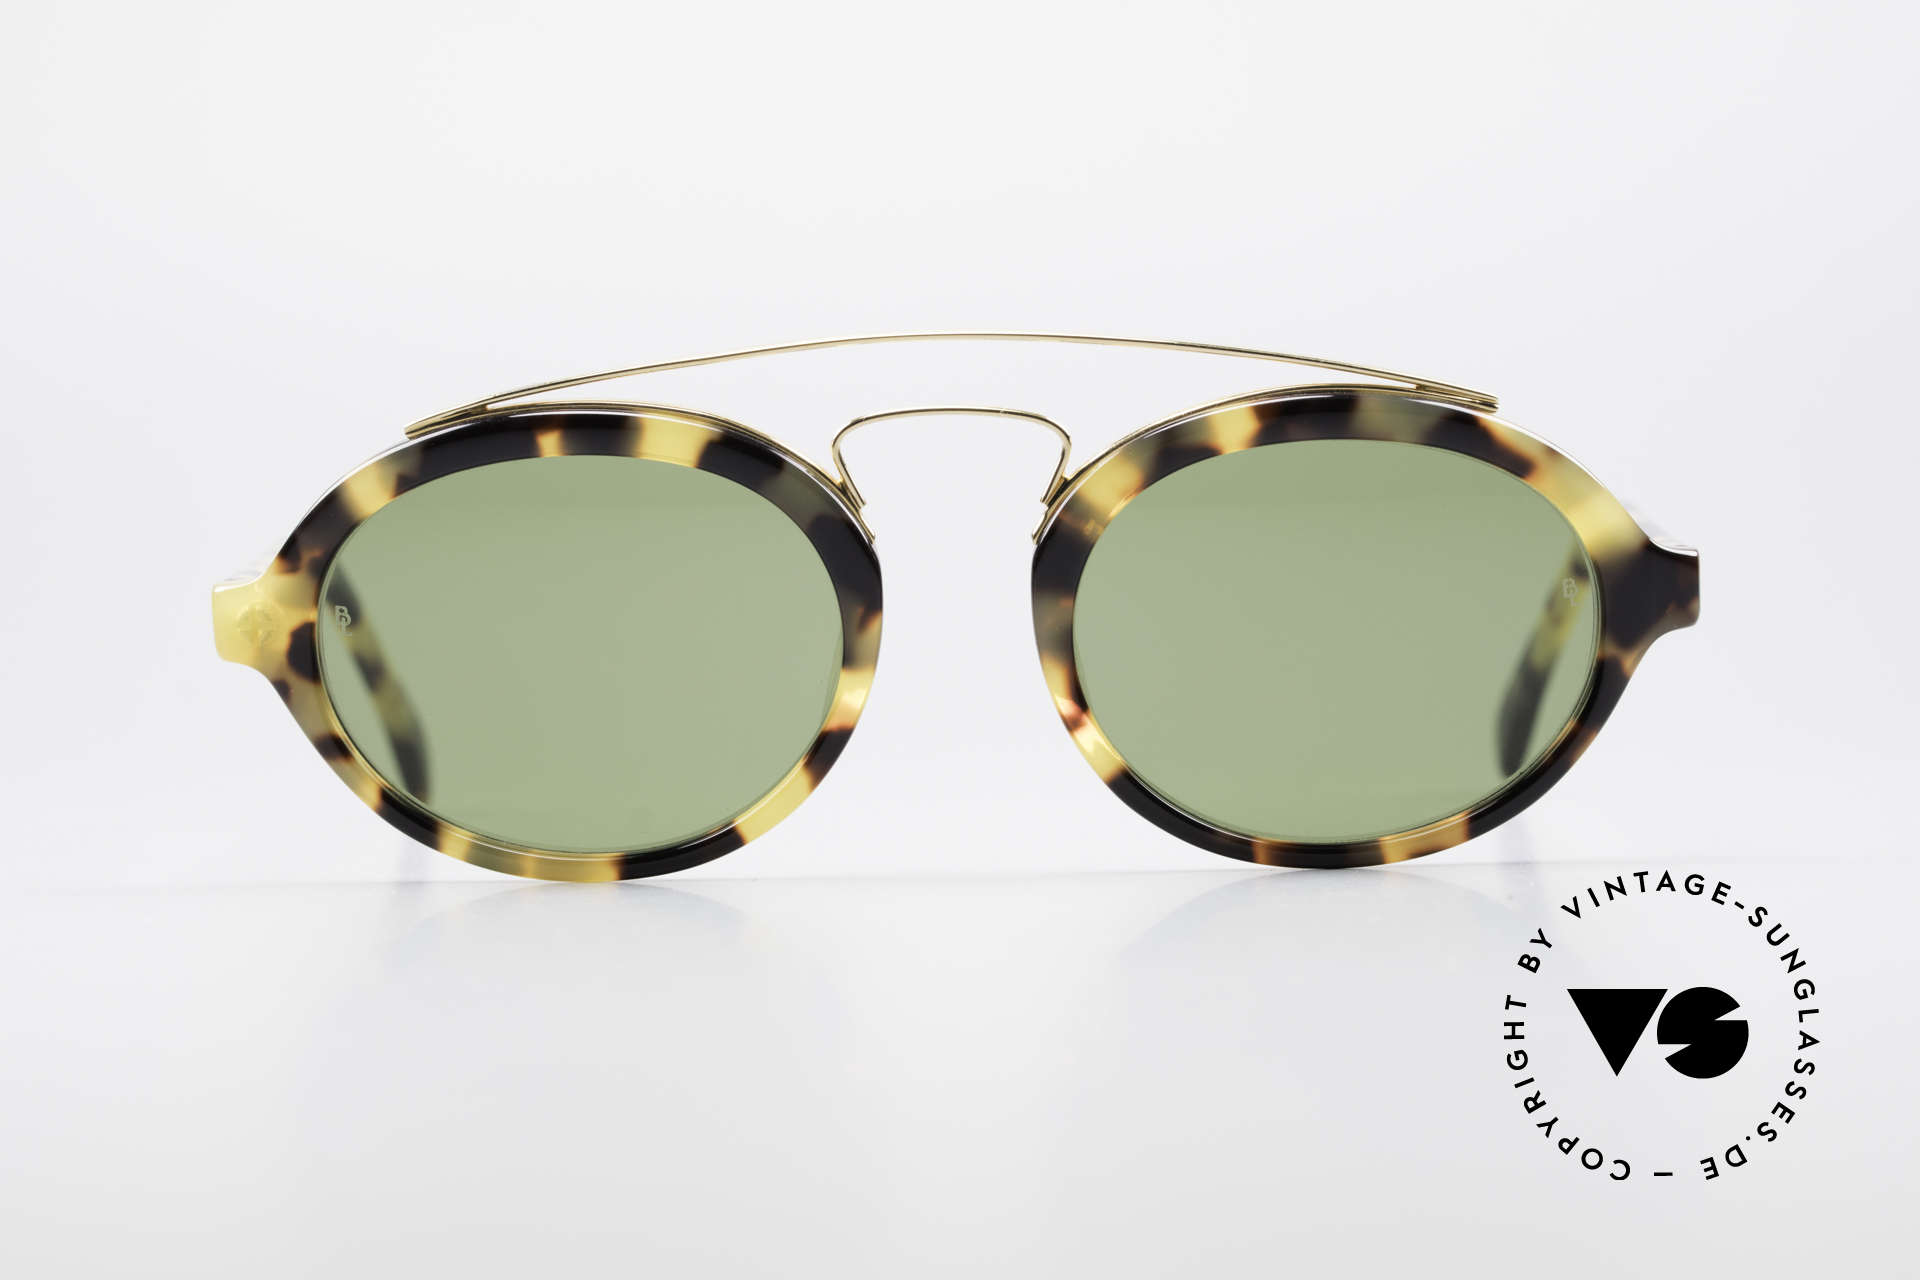 Ray Ban Gatsby Style 6 Old Ray-Ban USA Sunglasses, vintage Ray Ban USA sunglasses of the 1990's, Made for Men and Women